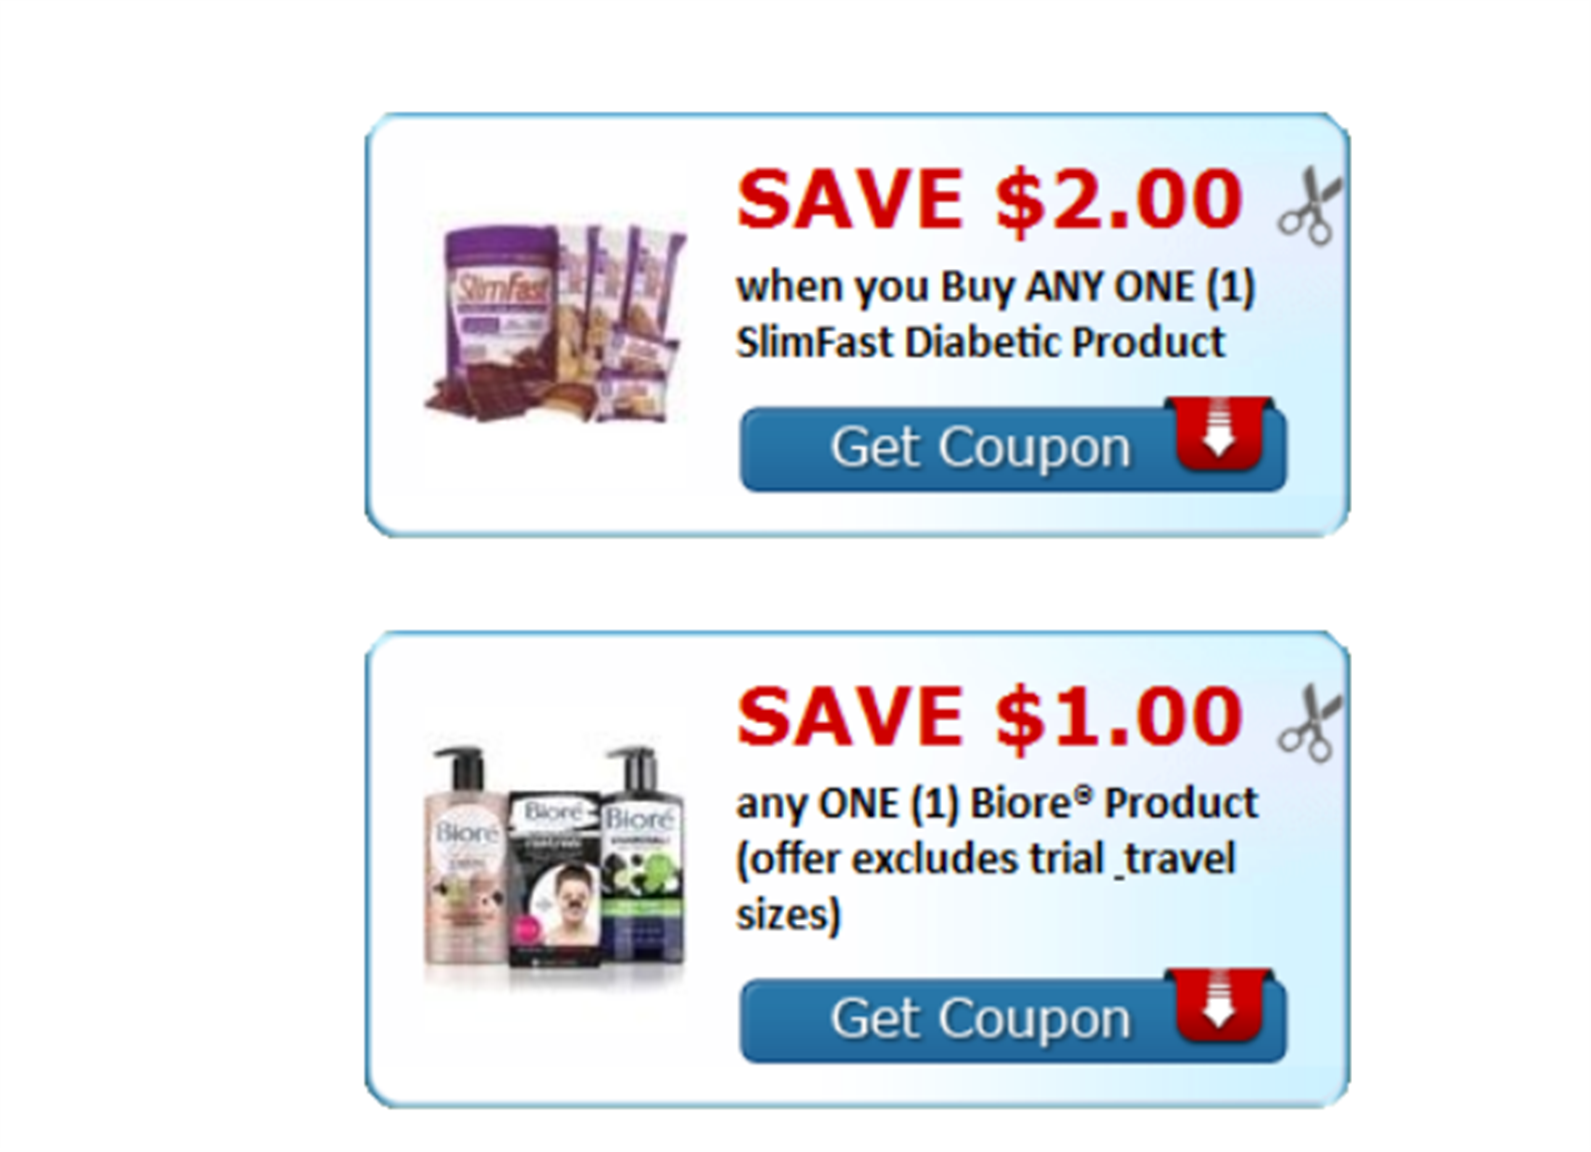 New Printable Coupons From Coupons.com